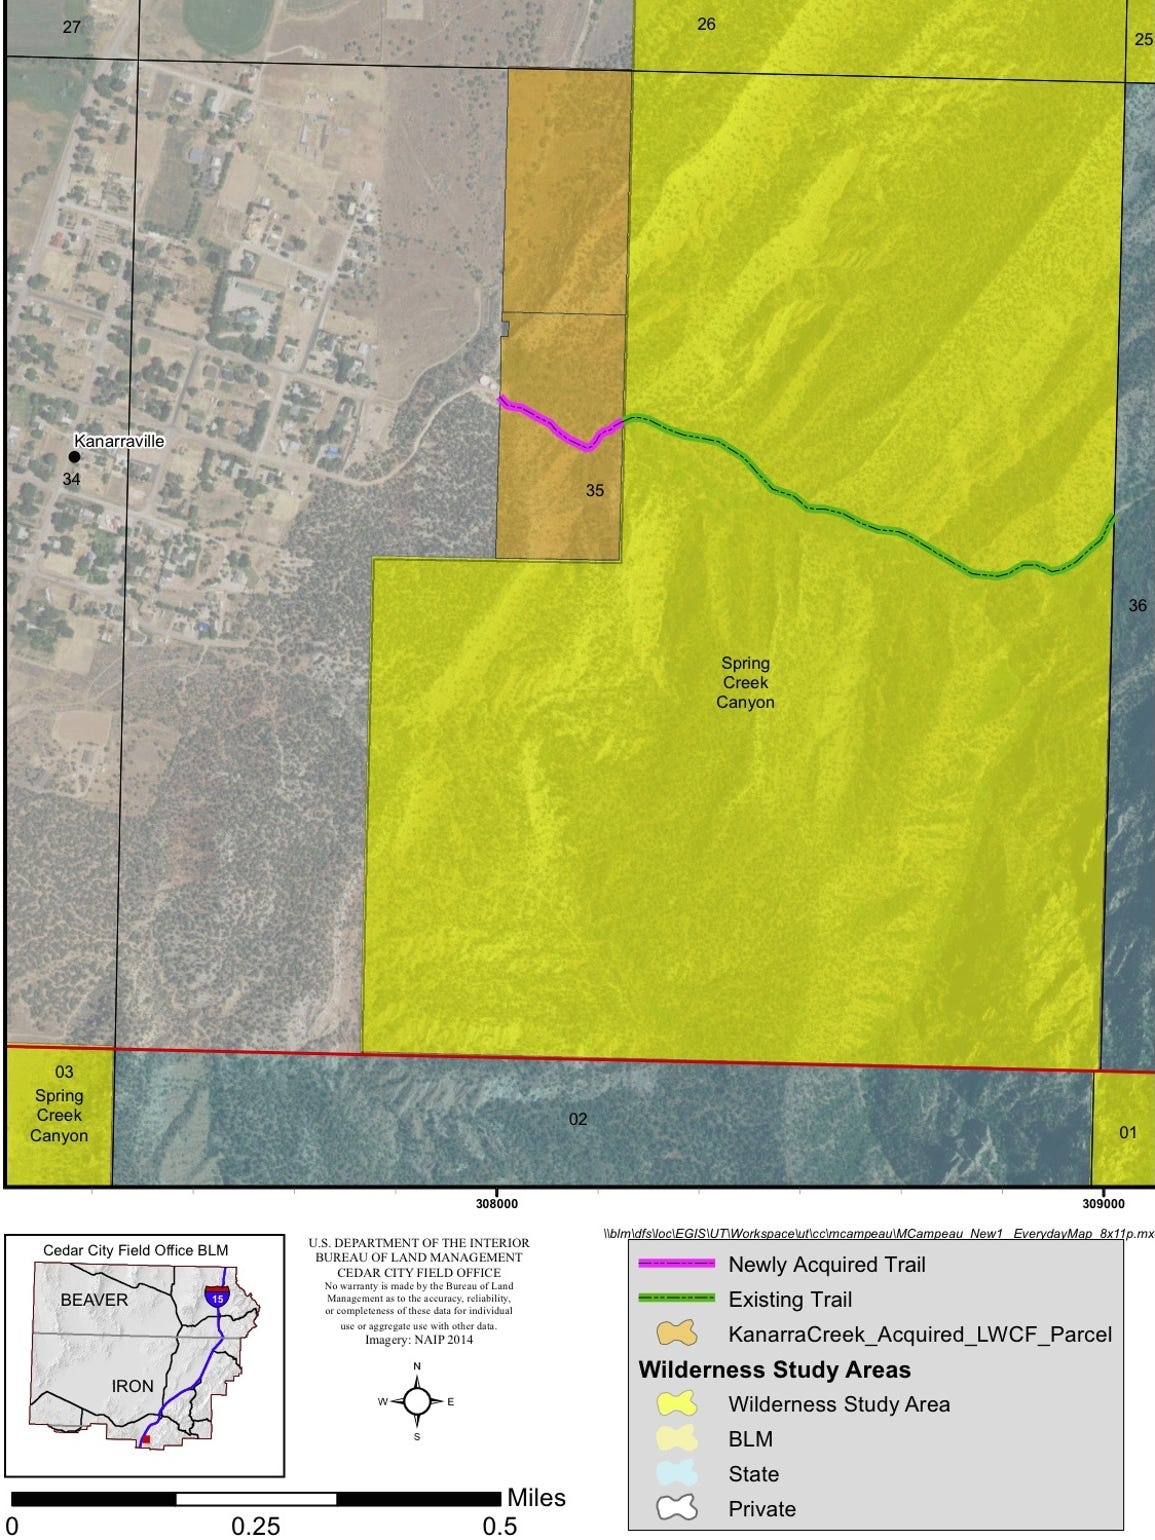 The BLM recently purchased 40-acres near Kanarraville